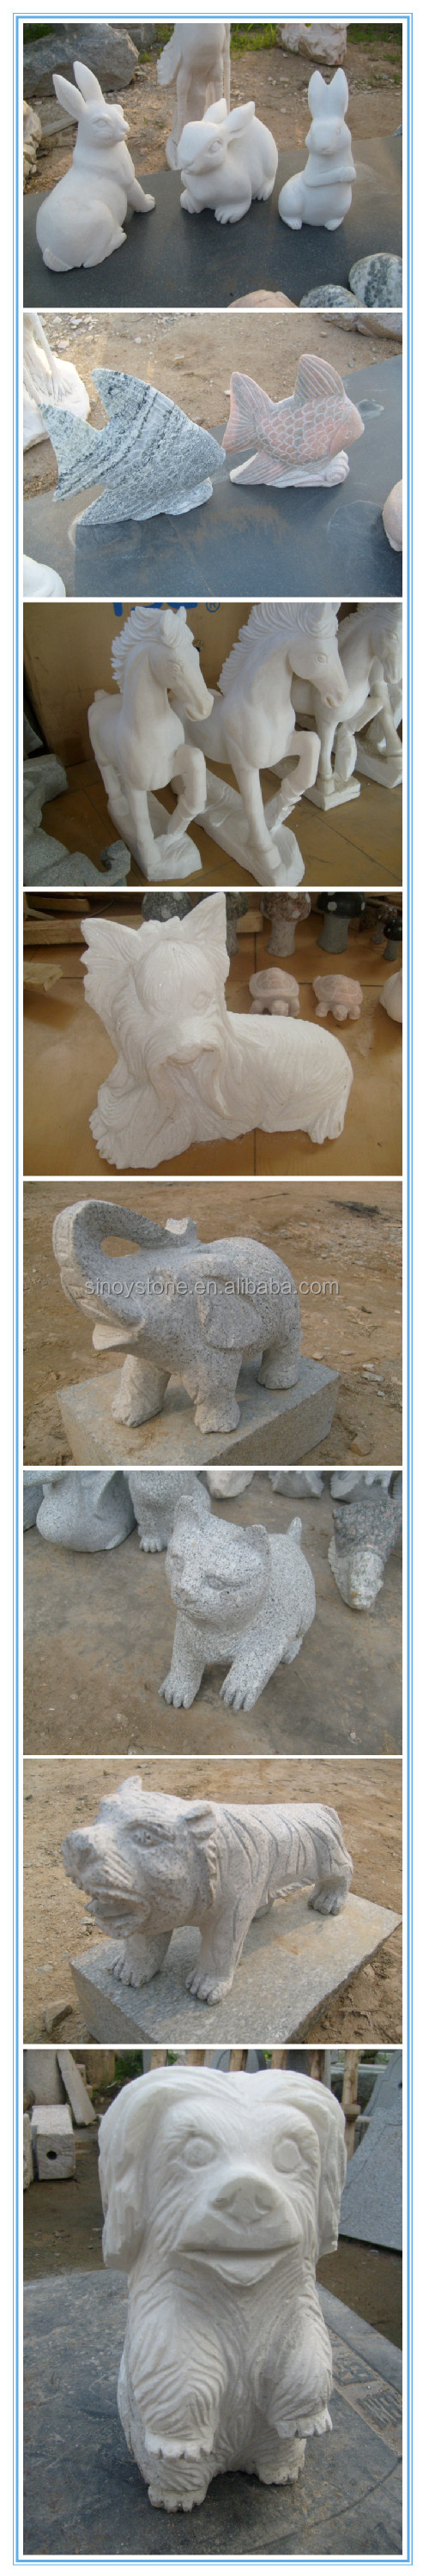 Hot sale animal stone eagle carvings buy